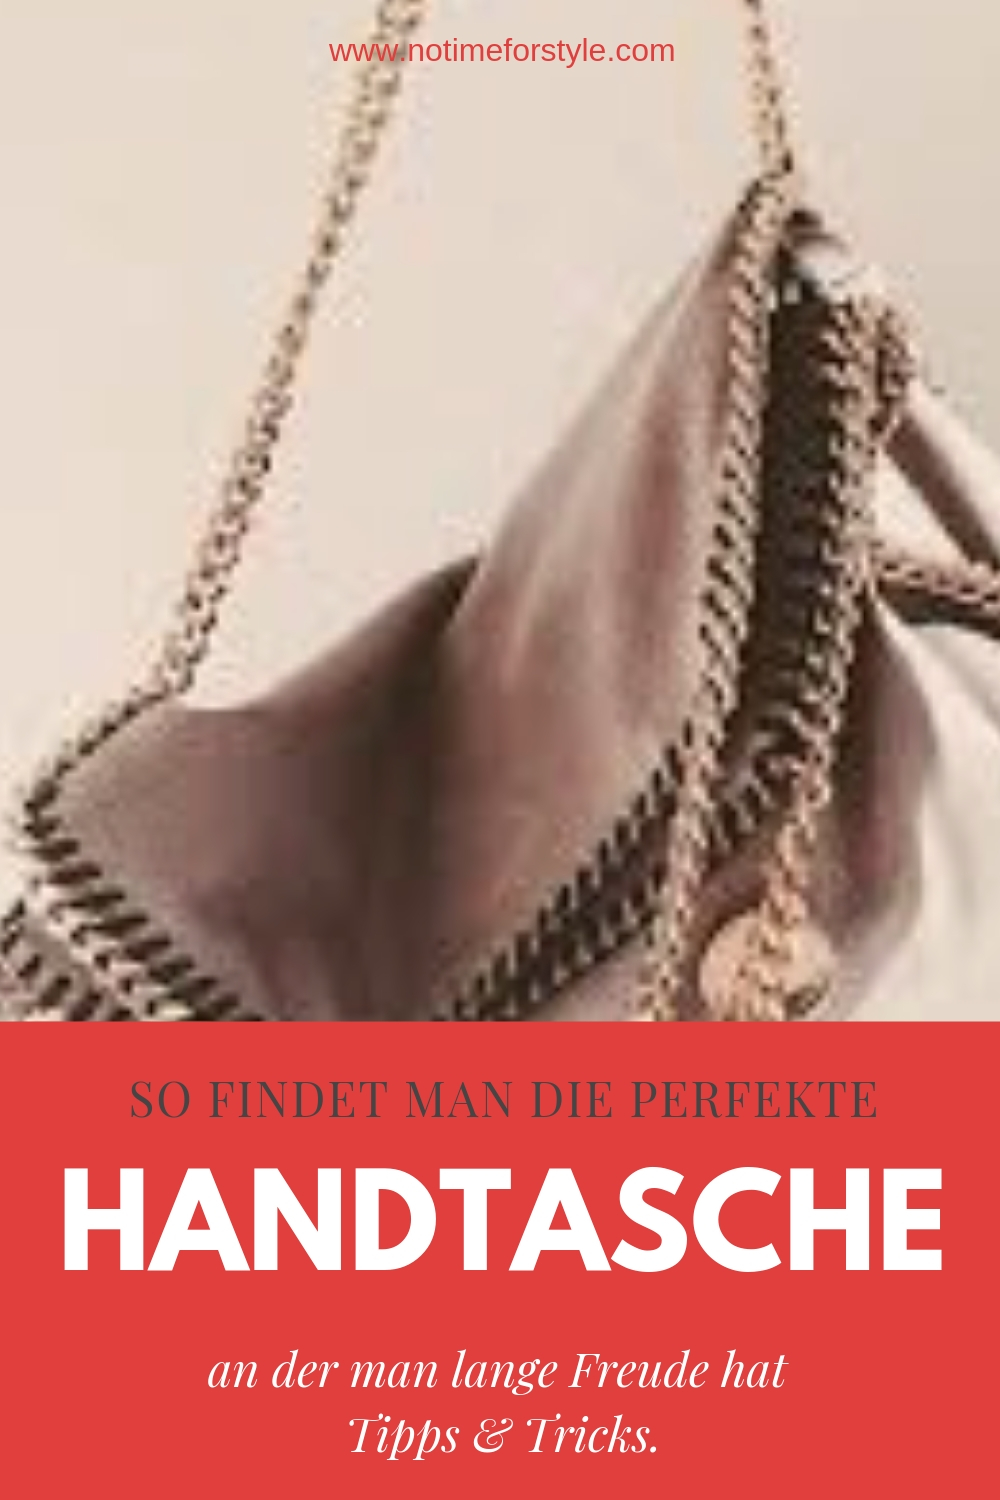 So findet man die ideale Hantasche. #chanel #vuitton #dior #hermes #prada #gucci